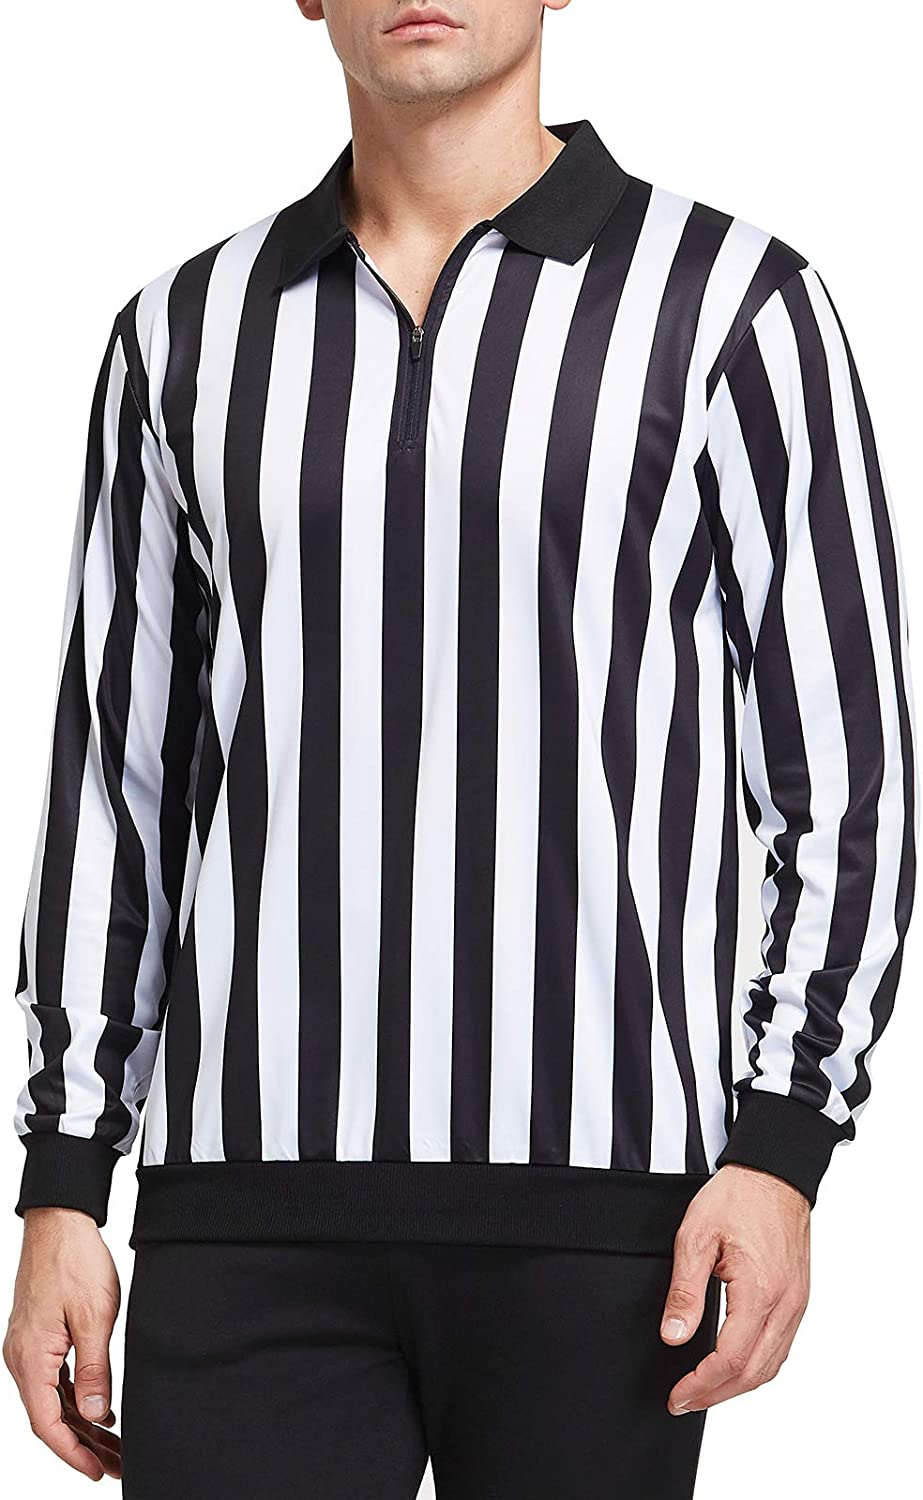 FitsT4 Official Long Sleeve Black & White Stripe Referee Shirt